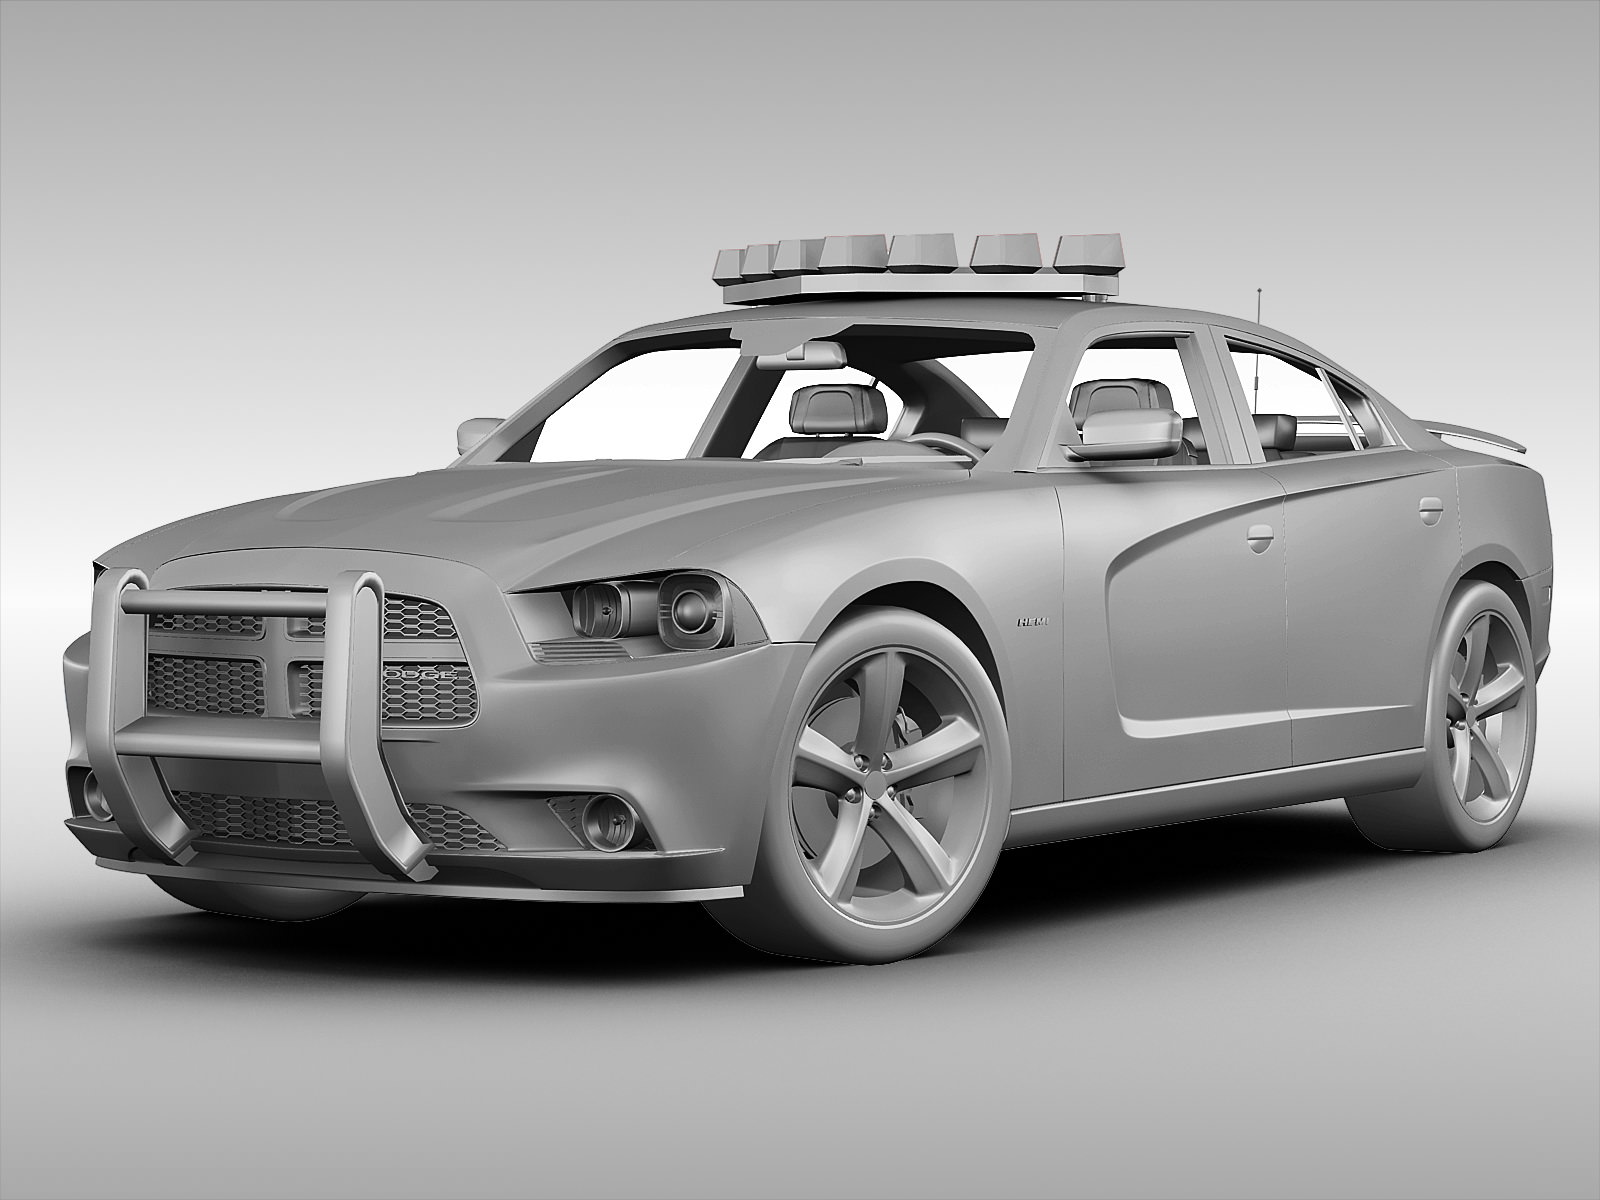 Dodge Charger NYPD Police Car 2013 3D Model MAX OBJ 3DS ...